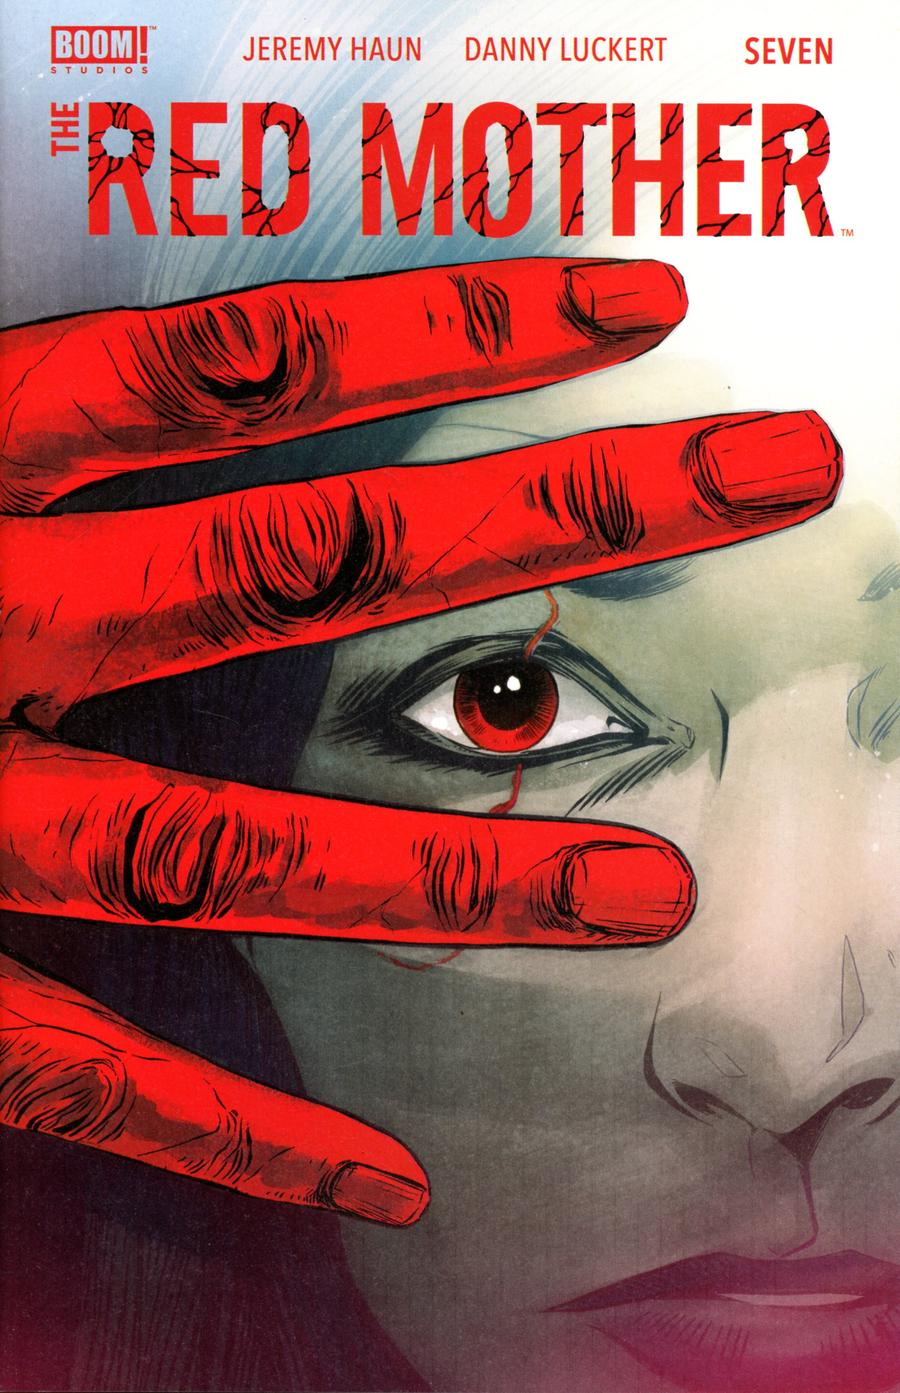 The Red Mother #7 (2020)